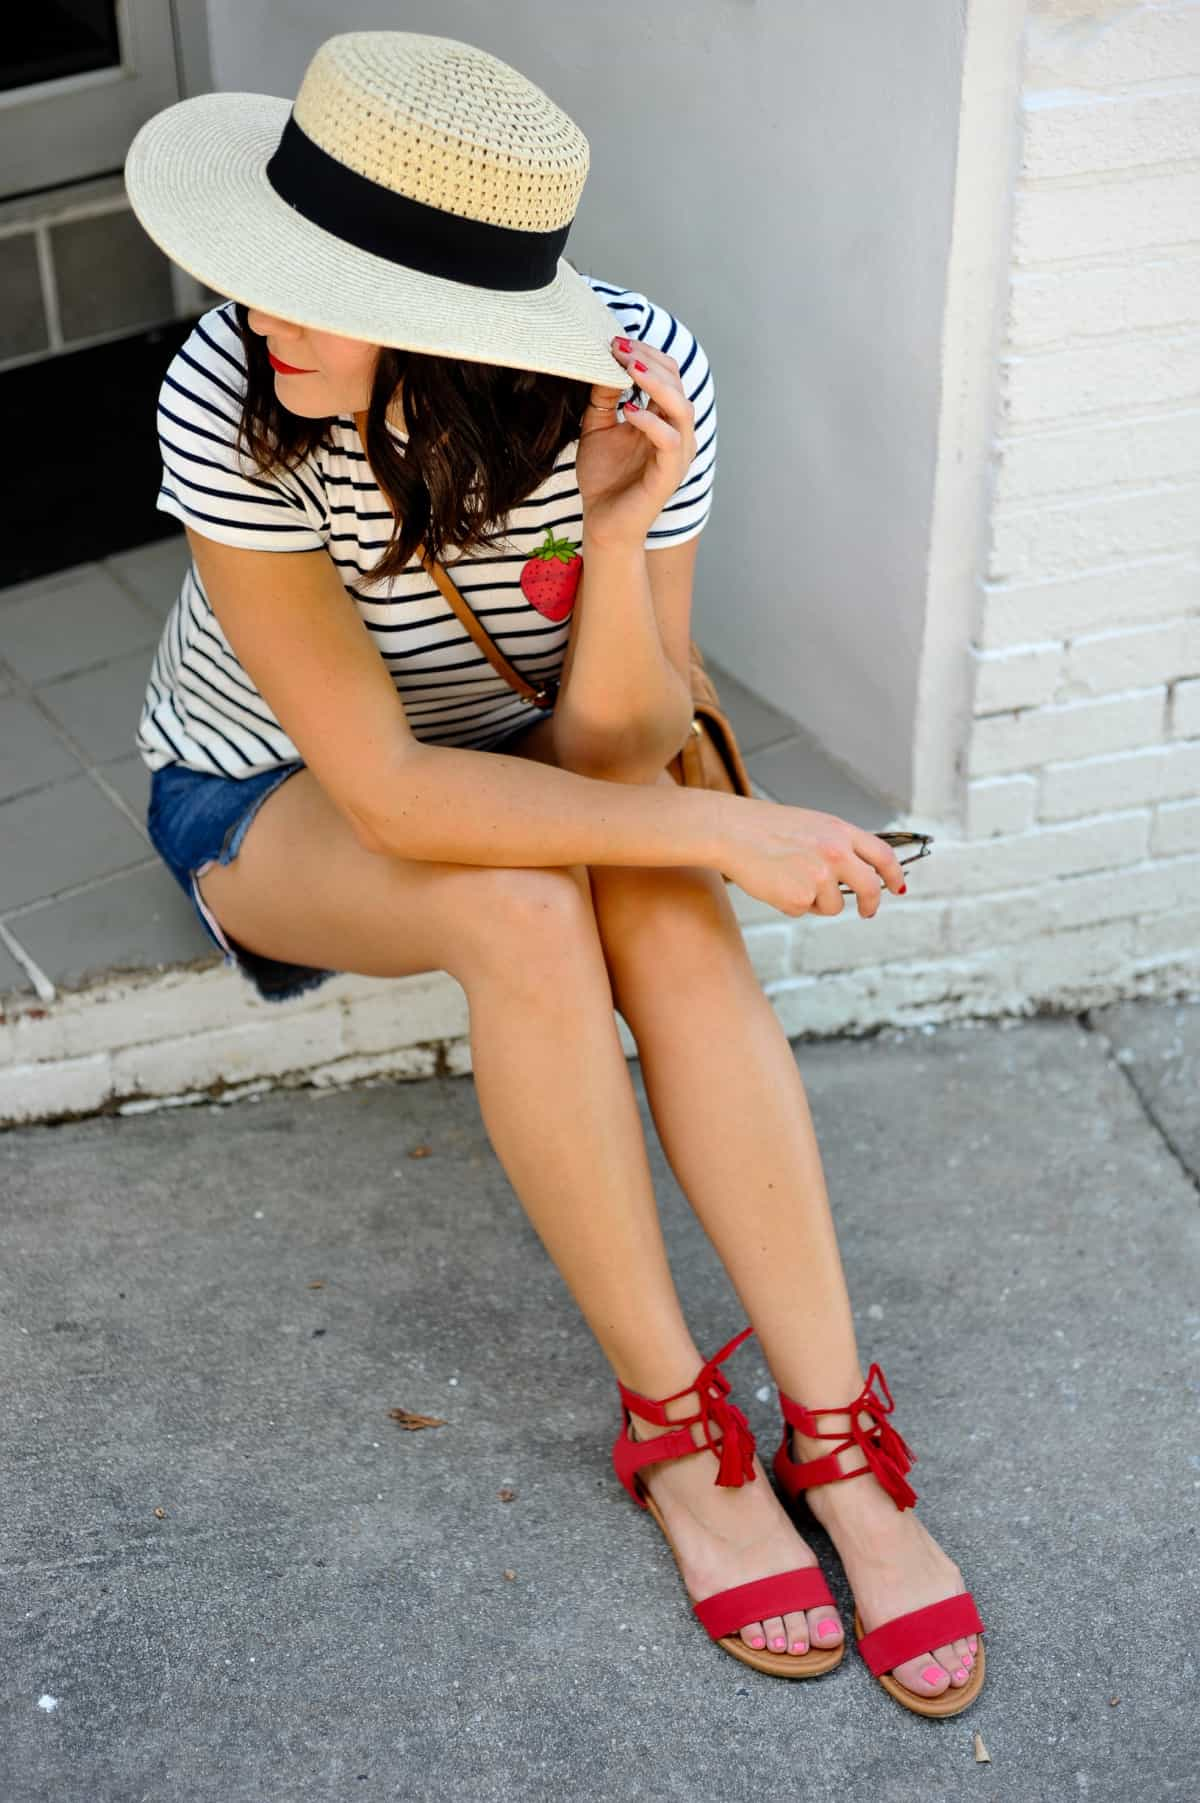 4th of july outfit ideas, striped tee outfits - @mystylevita - 21